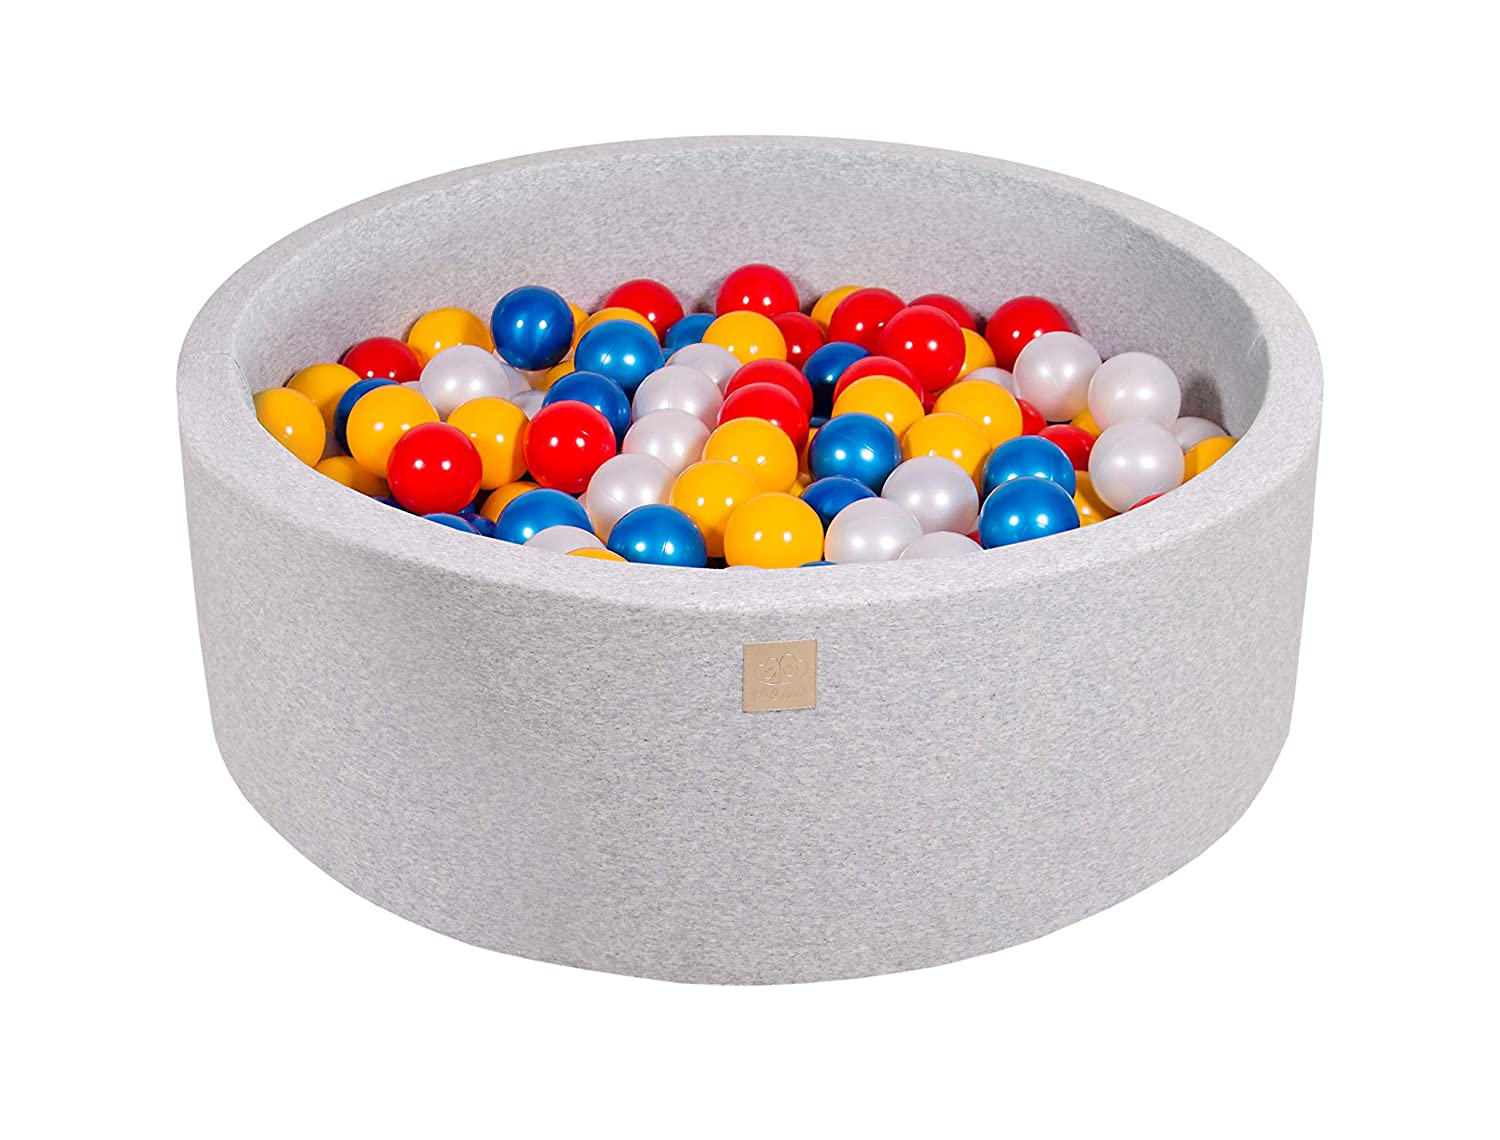 90x30//200 Balls, ight Grey:Light Pink//Grey//White Pearl//Transparent MEOWBABY 90X30cm//200 Balls /∅ 7Cm Baby Foam Ball Pit Ball Pool Certified Made In EU